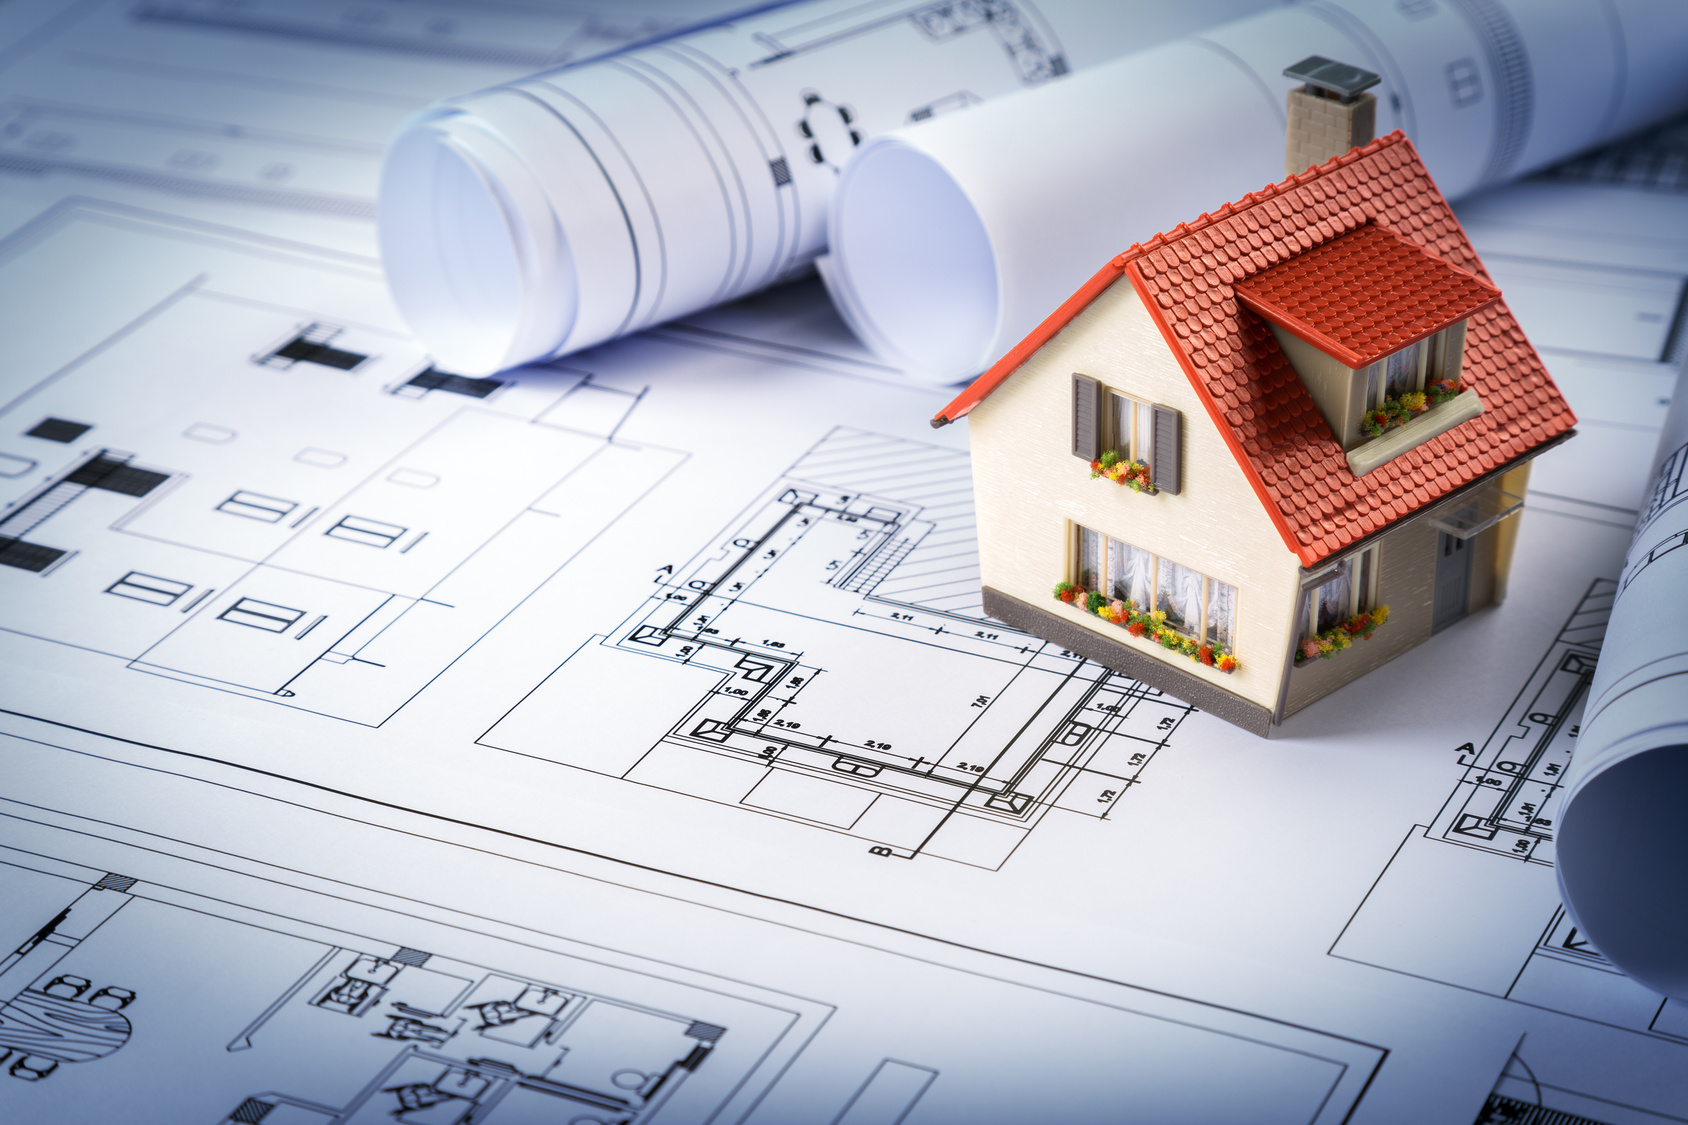 Le tarif pour faire r aliser les plans d 39 une maison les for Plans et dessins de construction